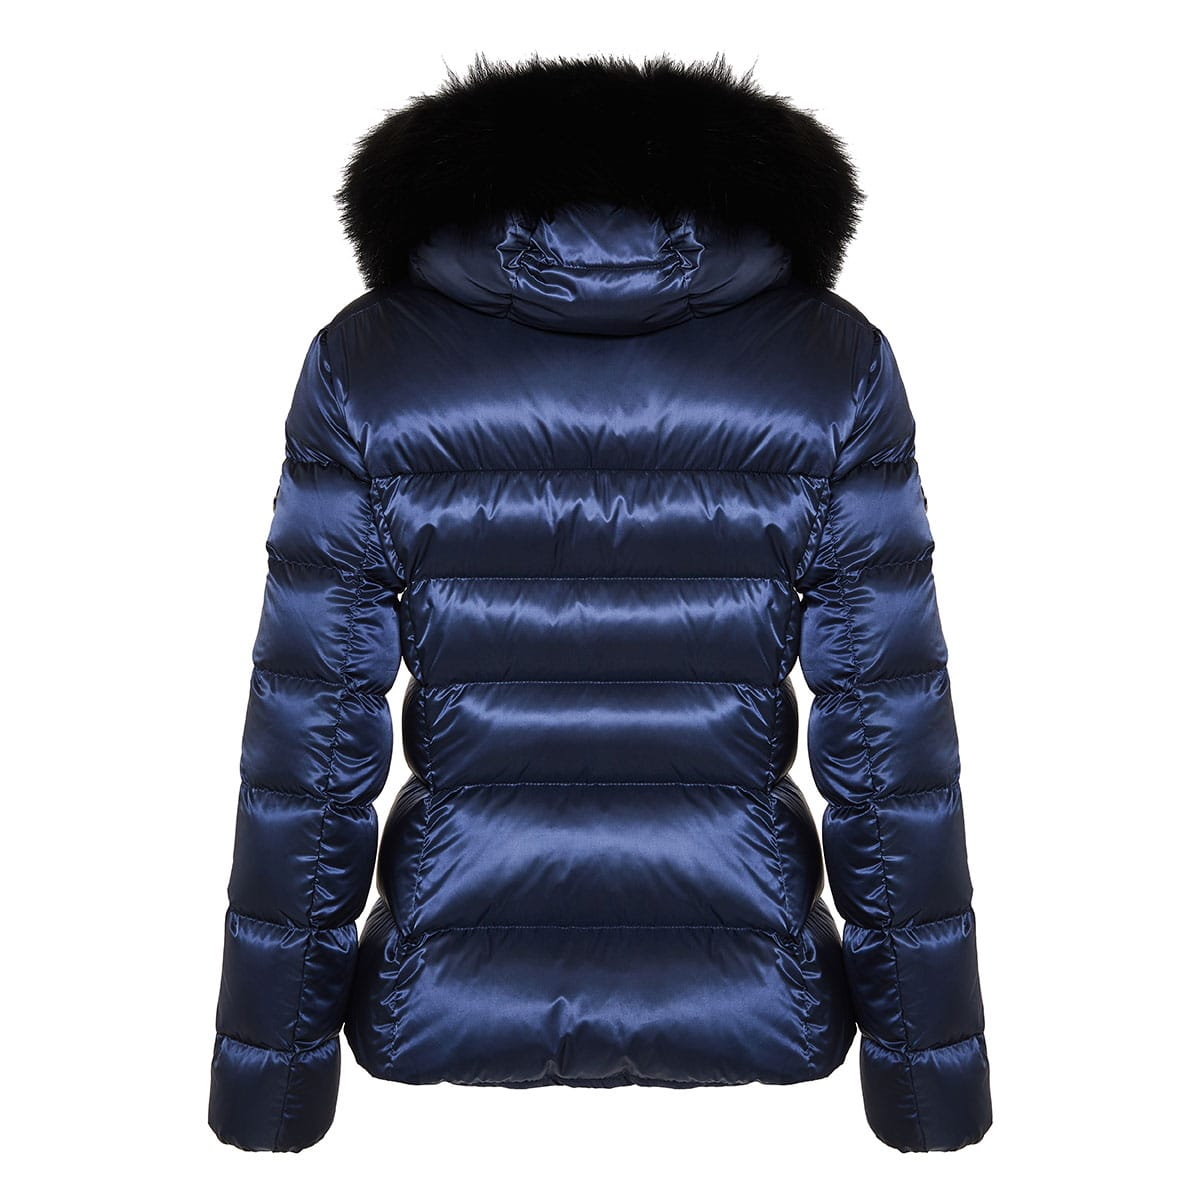 Fur-trimmed quilted puffer jacket